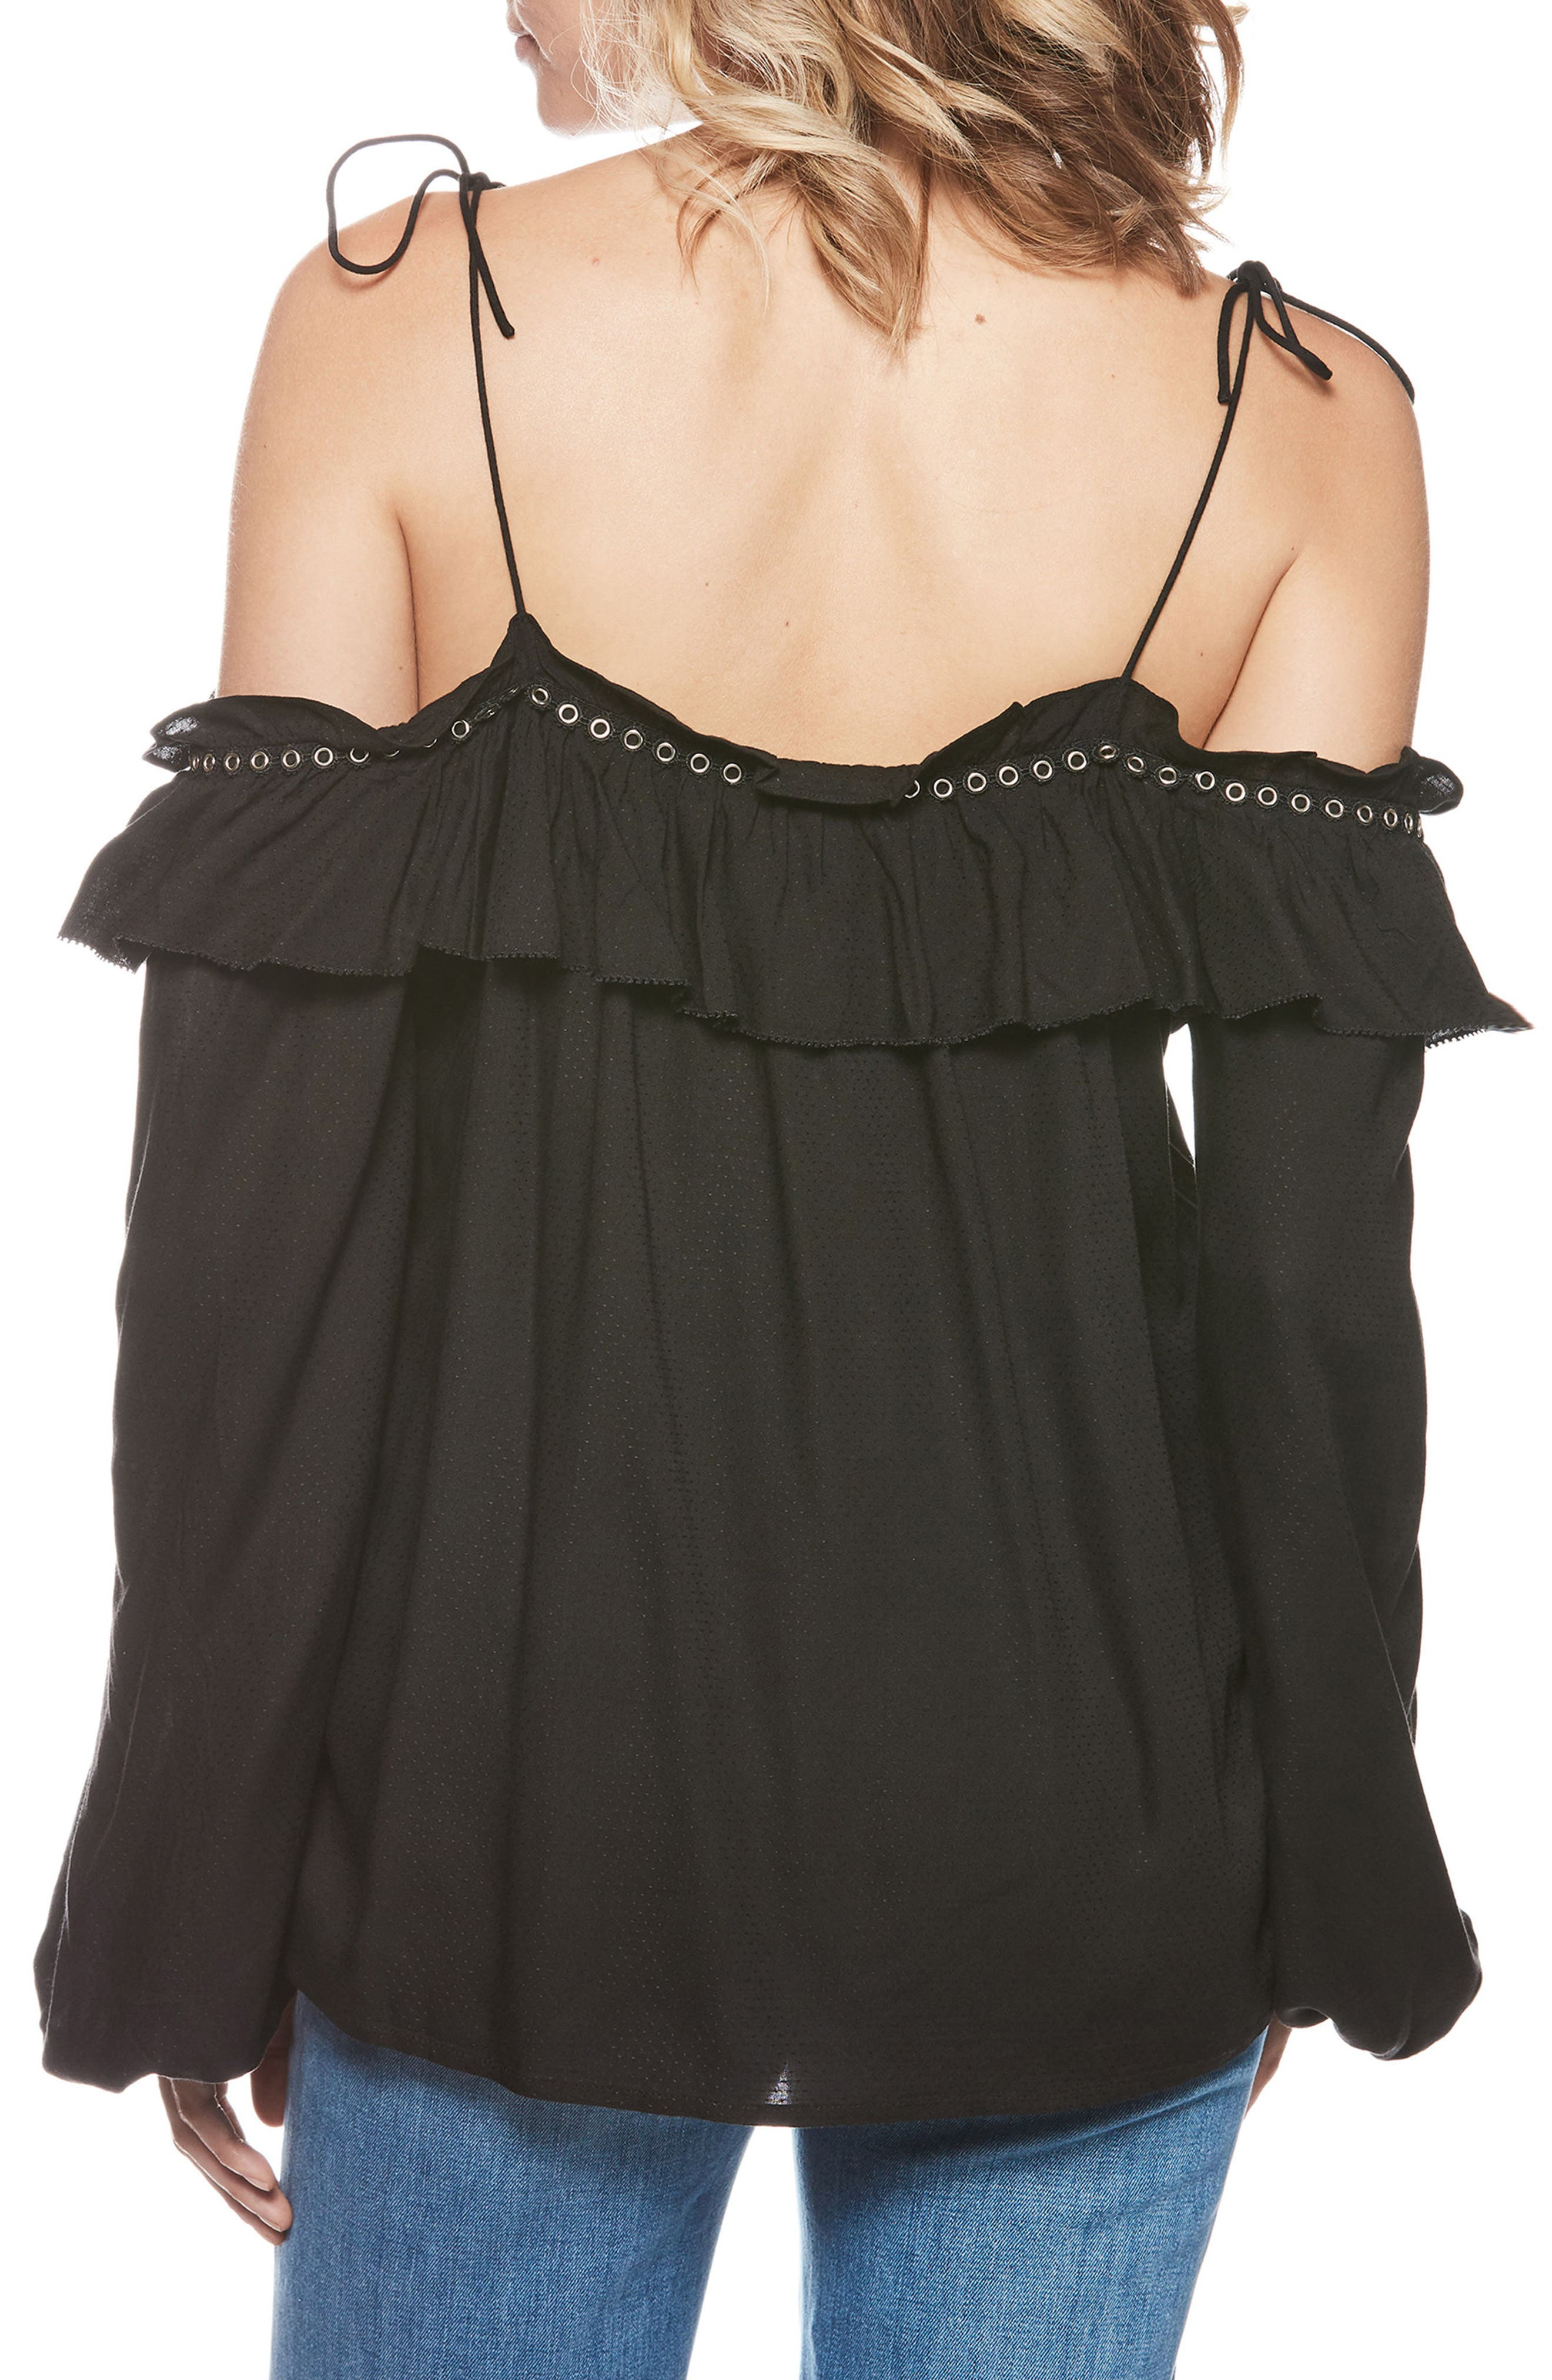 Journee Tie Shoulder Blouse,                             Alternate thumbnail 2, color,                             BLACK